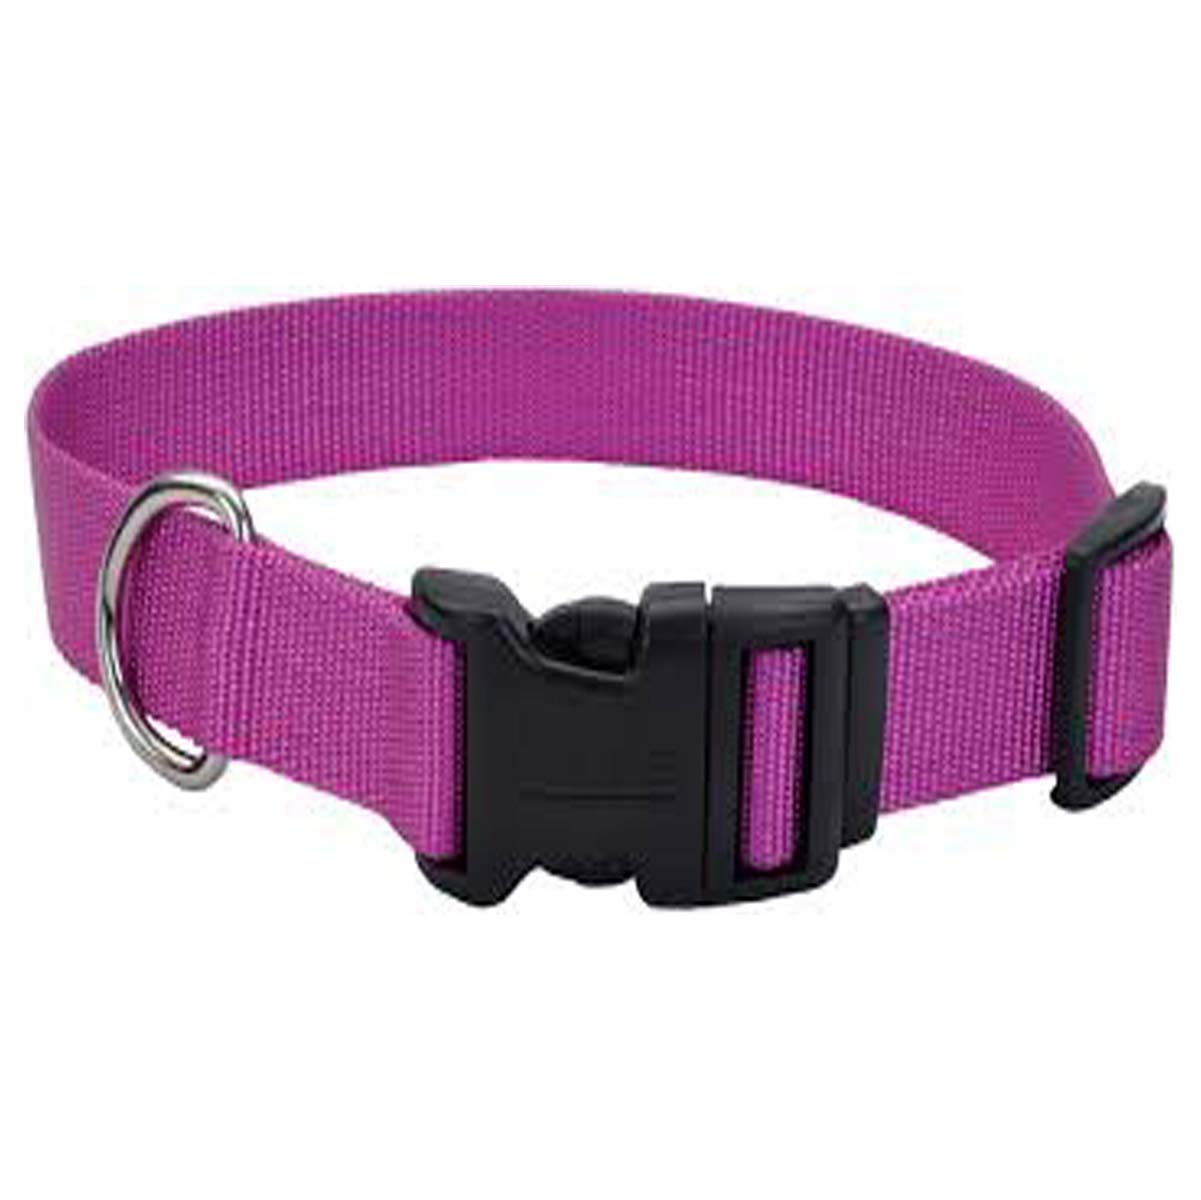 Buy Dog Nylon Collar 1.25